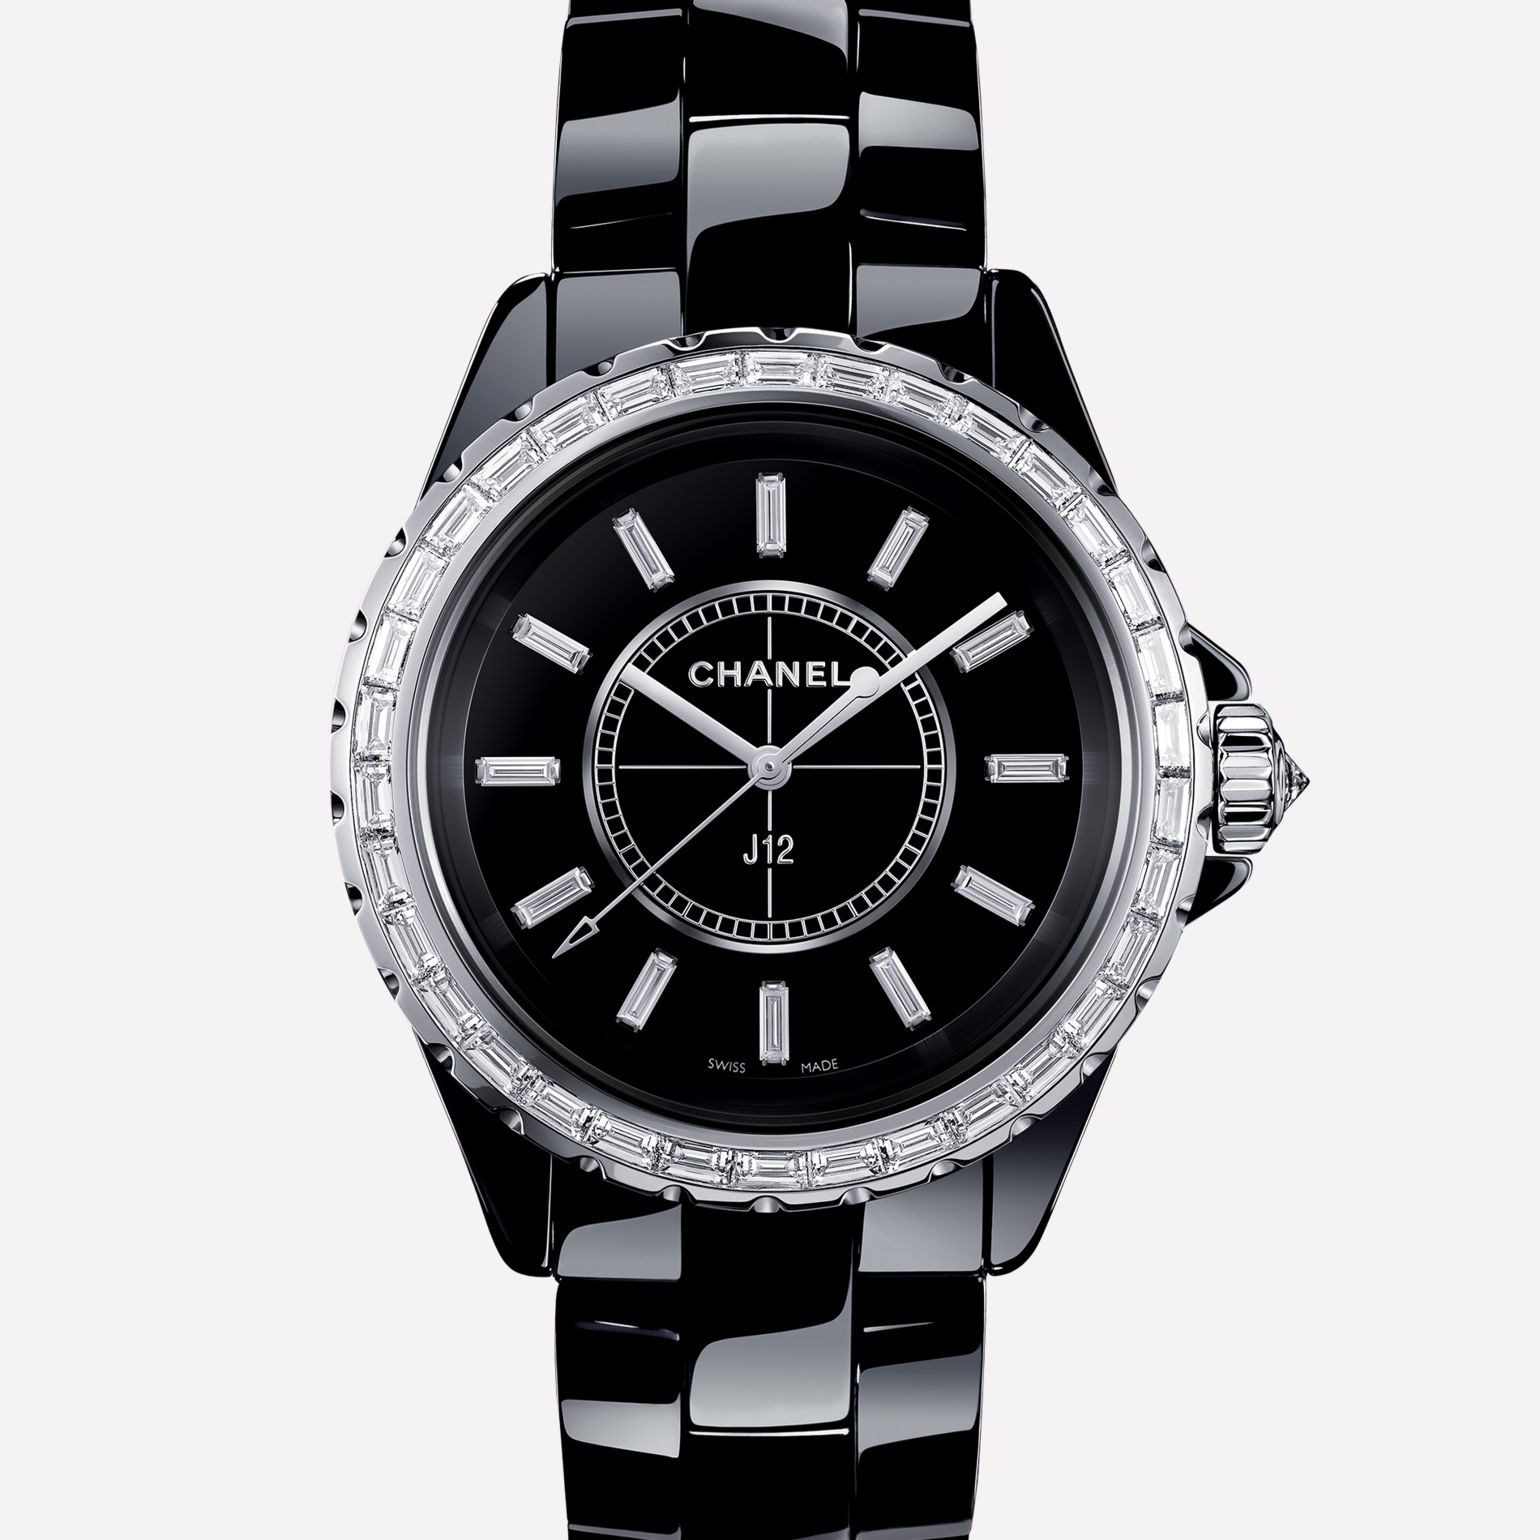 J12 Jewellery Watch Black ceramic and white gold, bezel and indicators with baguette cut diamonds